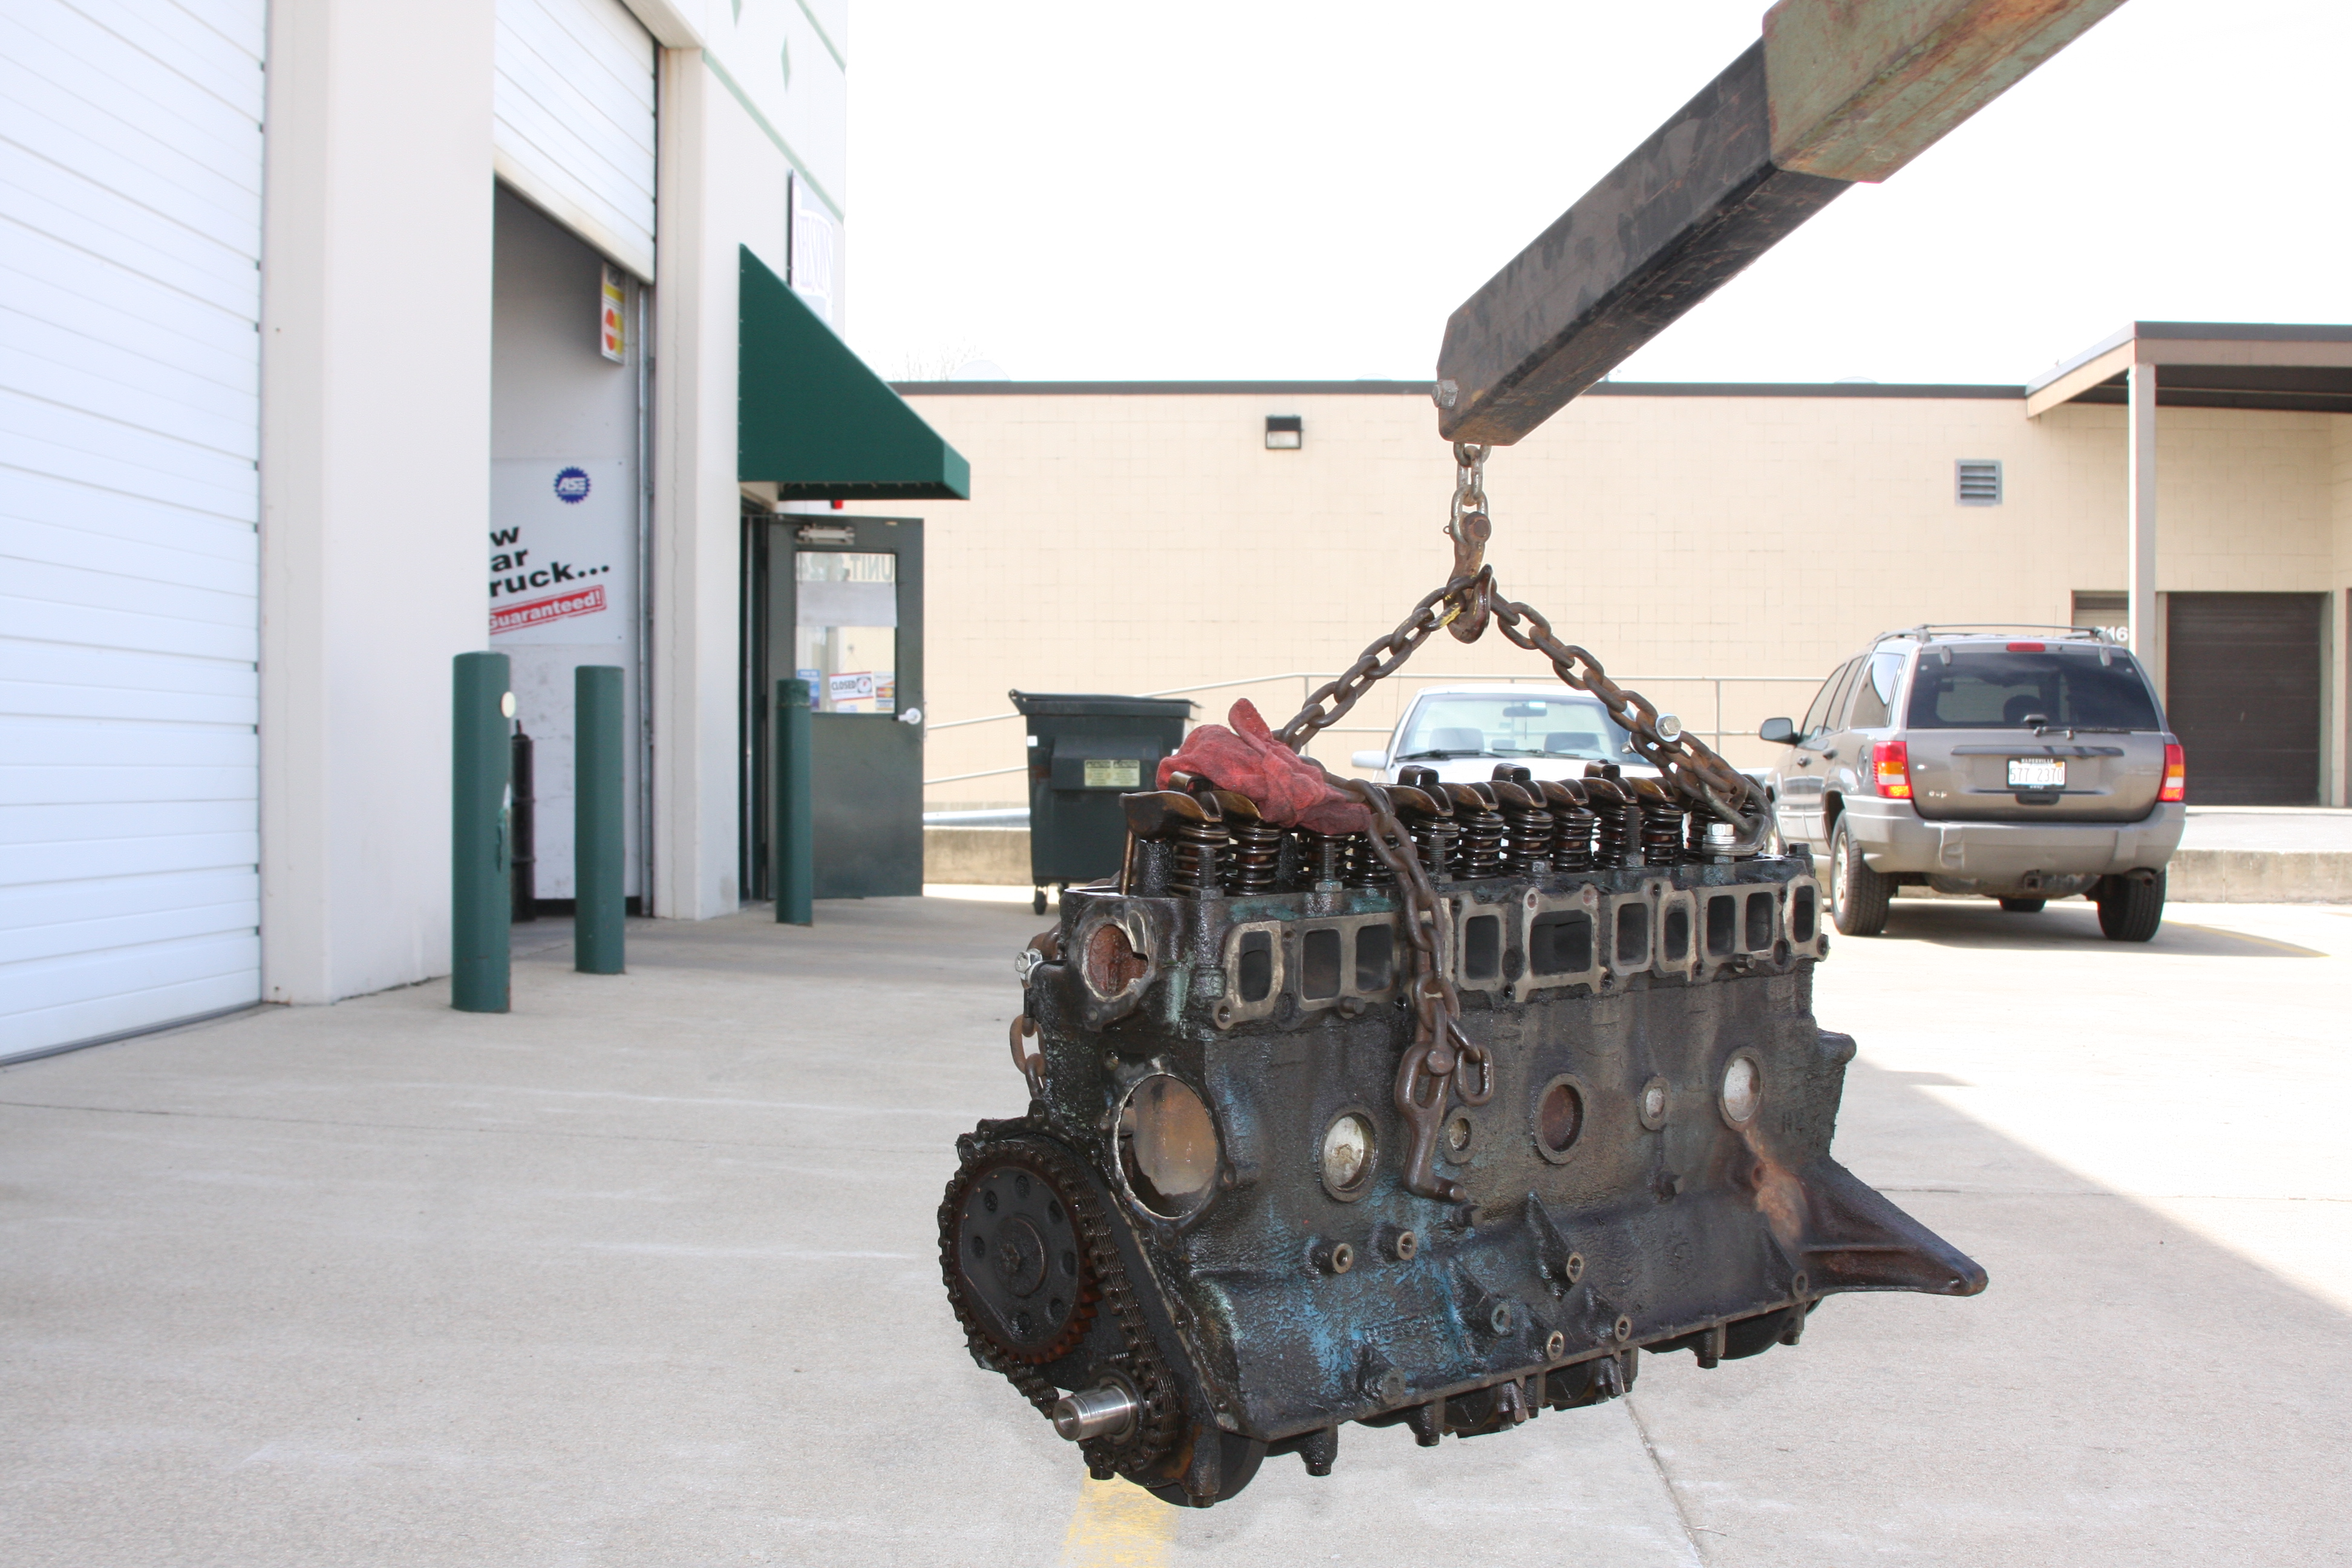 Transmisssion Engine Repair Naperville Car Transimission Services